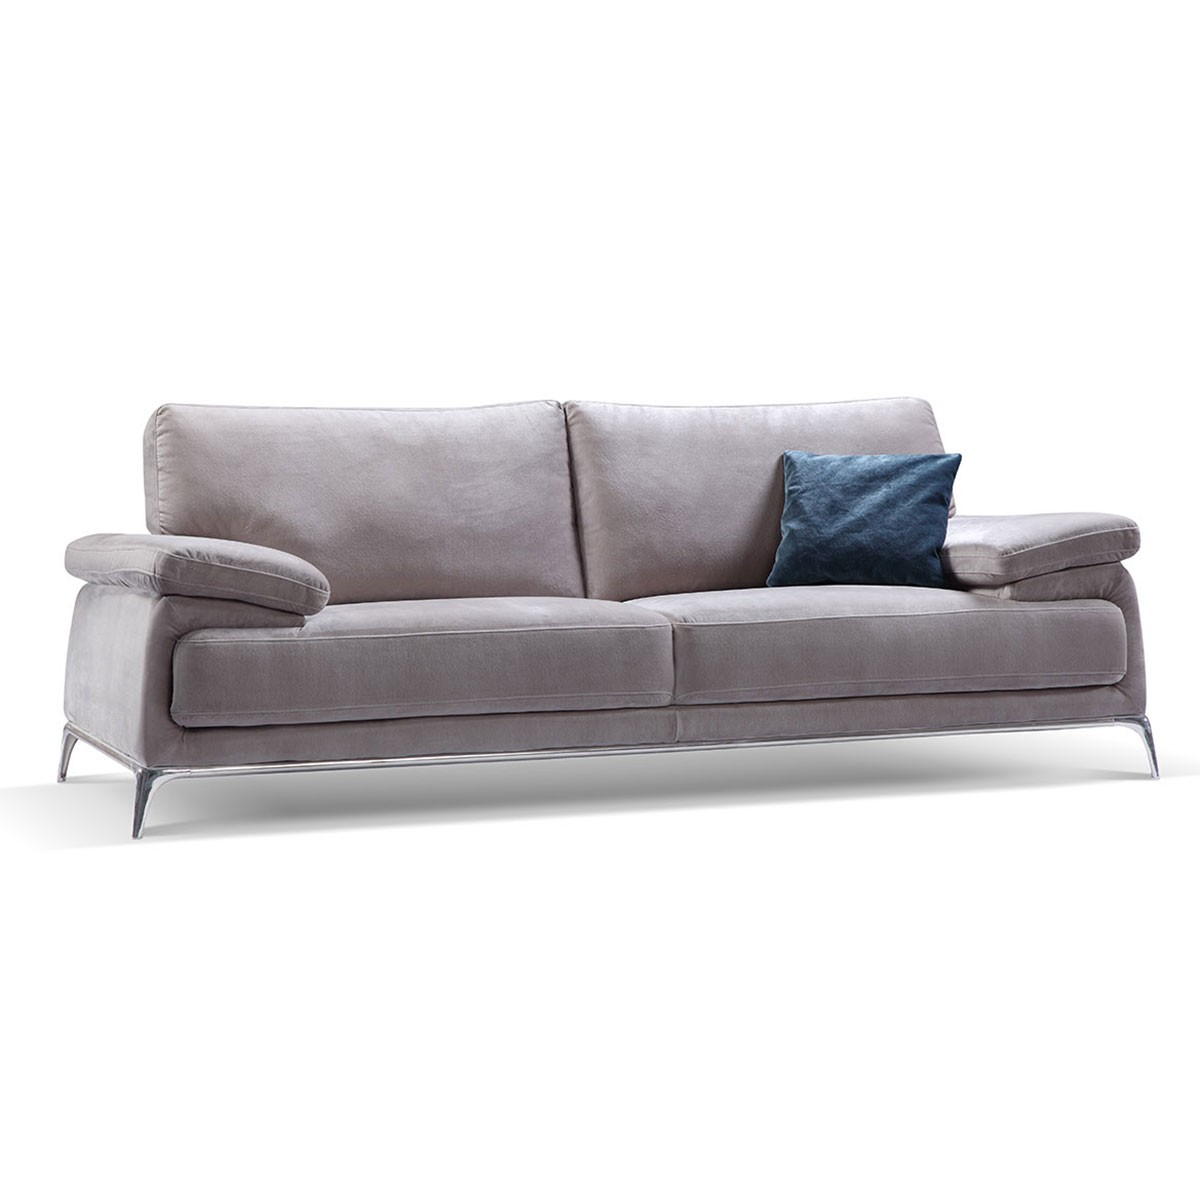 Fabric 3 Seater Sofa with Pillows - Grey (BO-605-2S)